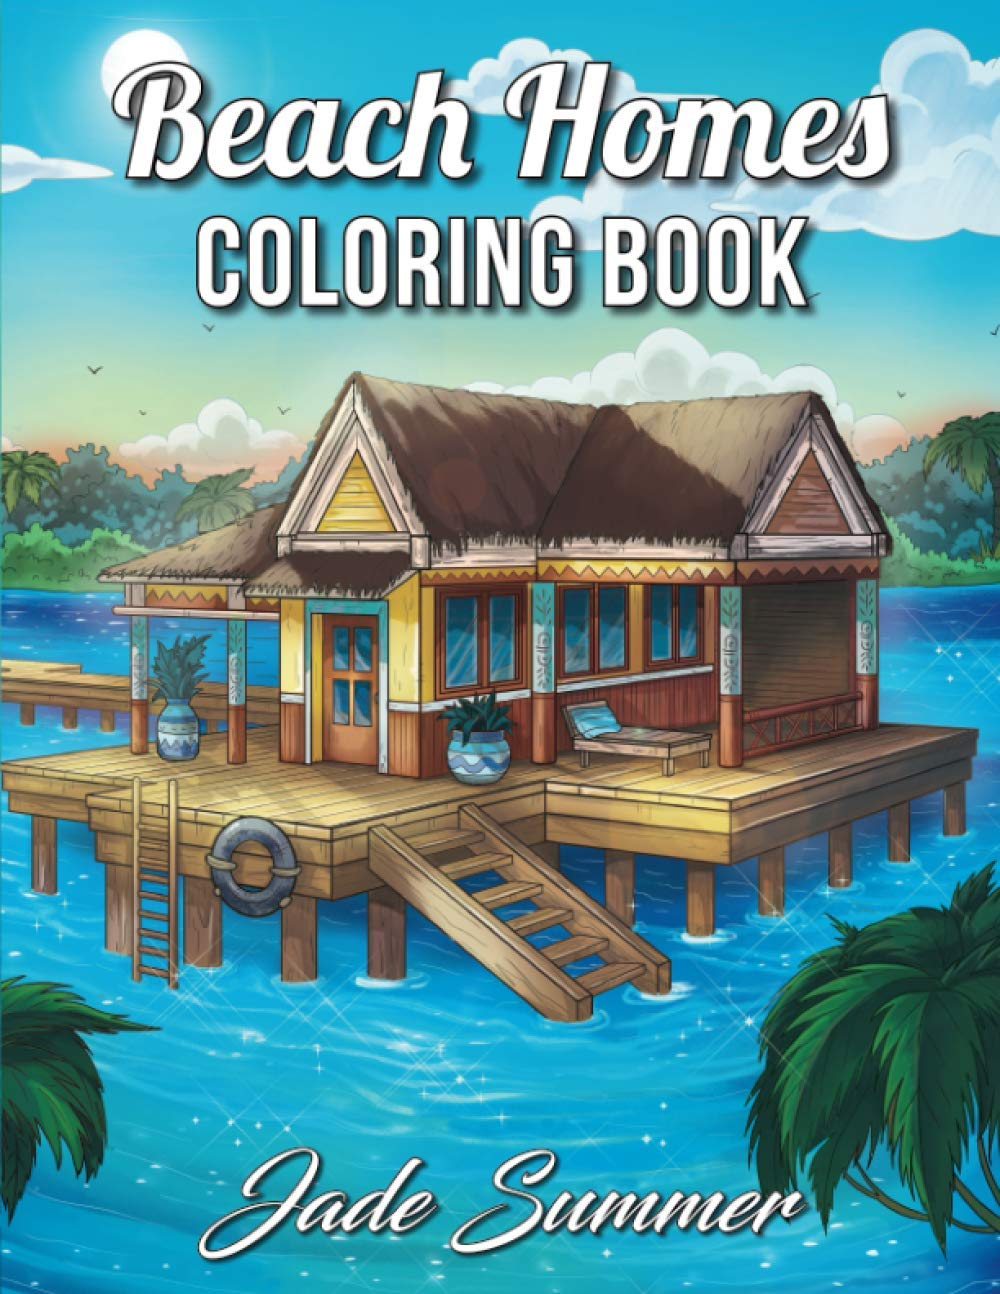 Beach Homes An Adult Coloring Book With Beautiful Vacation Houses Charming Interior Designs And Relaxing Nature Scenes Coloring Books With Homes Summer Jade 9781699845851 Amazon Com Books